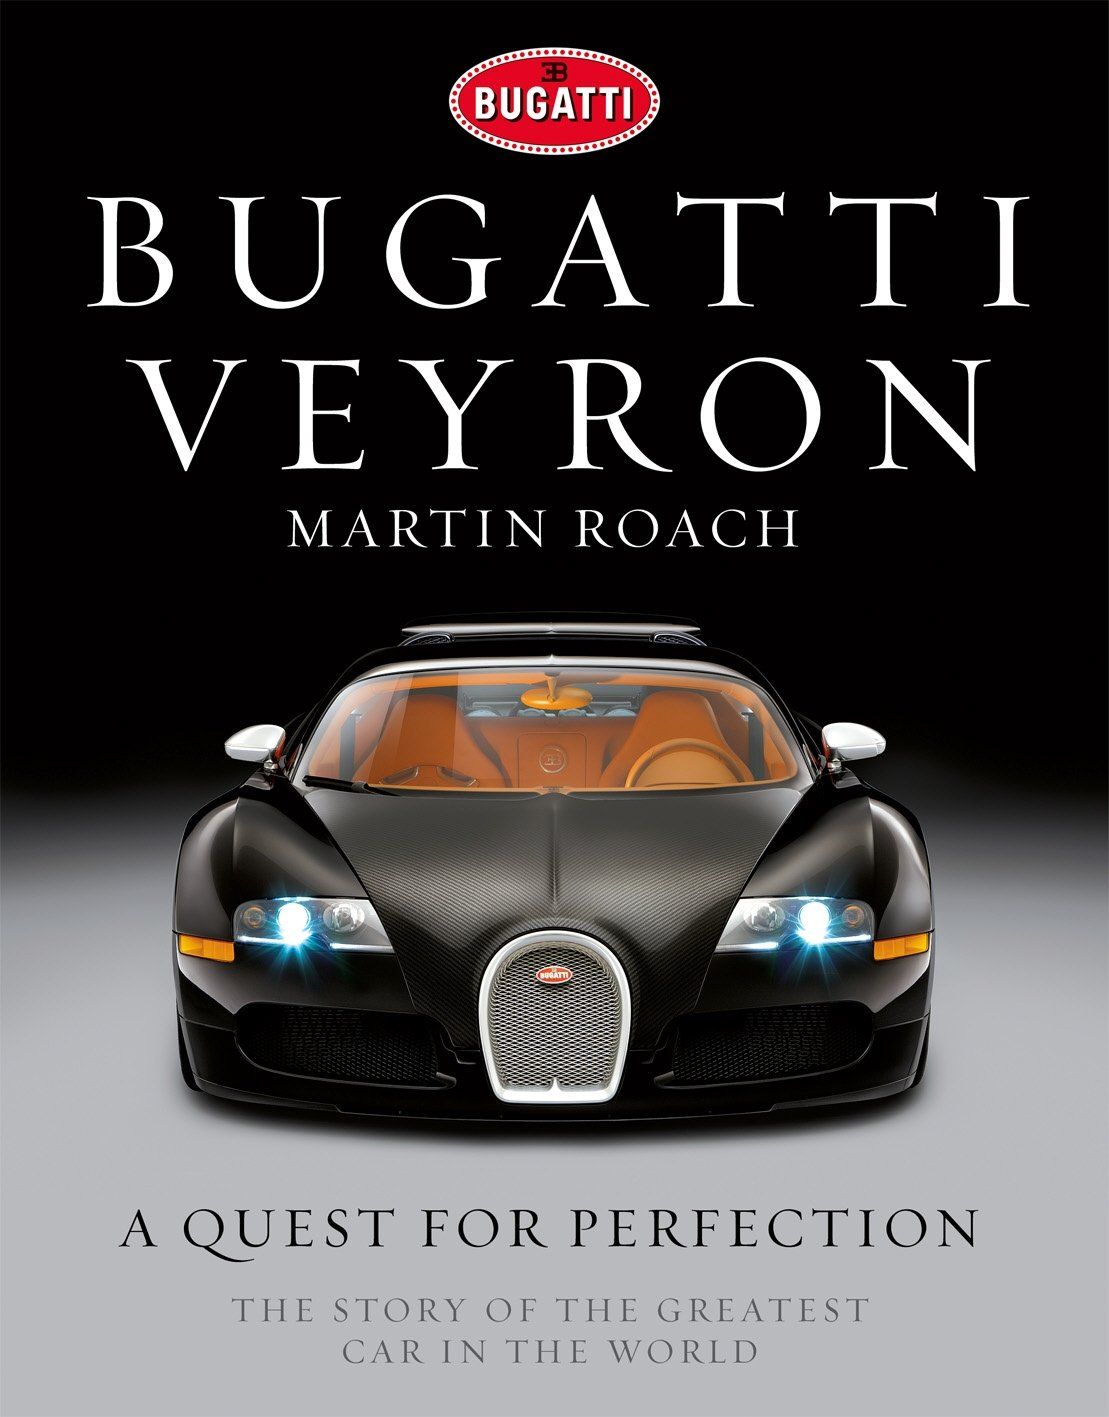 Bugatti Veyron: A Quest for Perfection - The Story of the Greatest